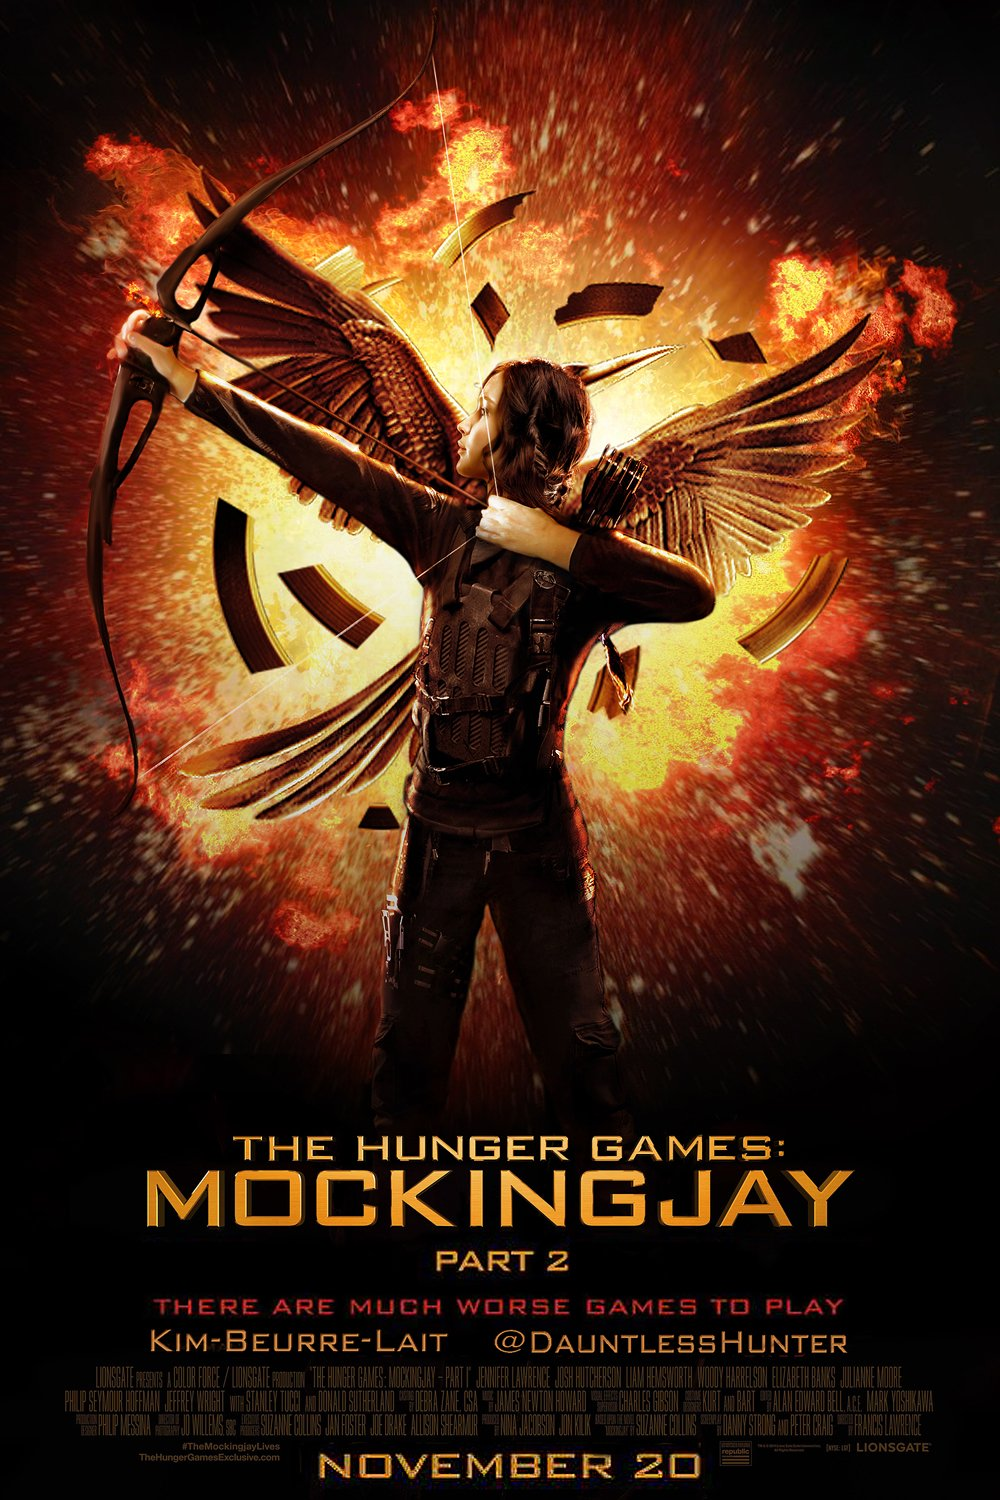 The Hunger Games: Mockingjay Part 2 (Movie) Review 3